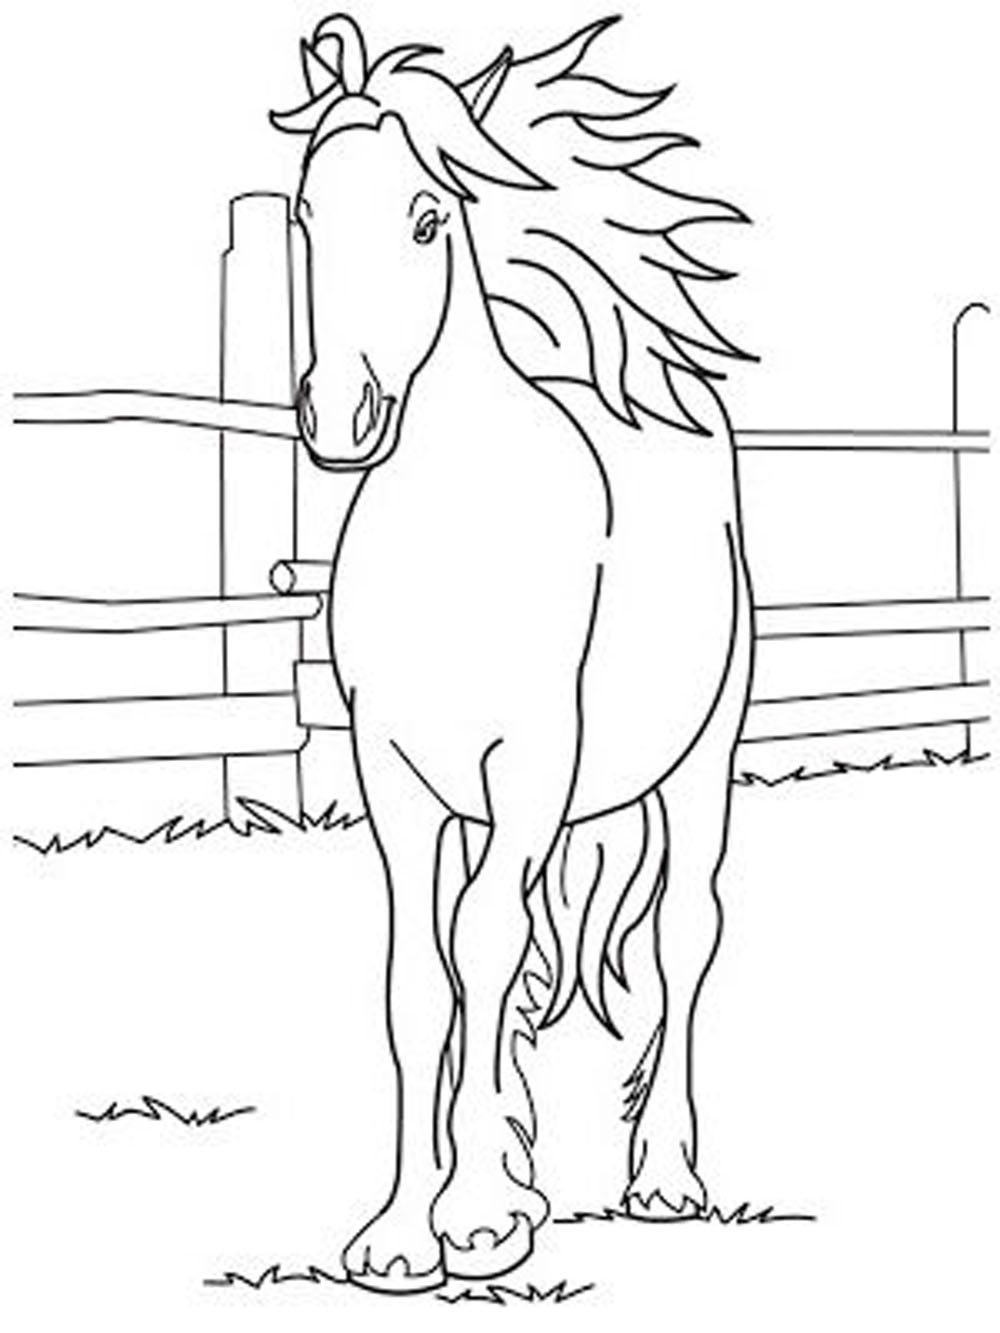 coloring horses printable horse coloring pages preschool and kindergarten horses printable coloring